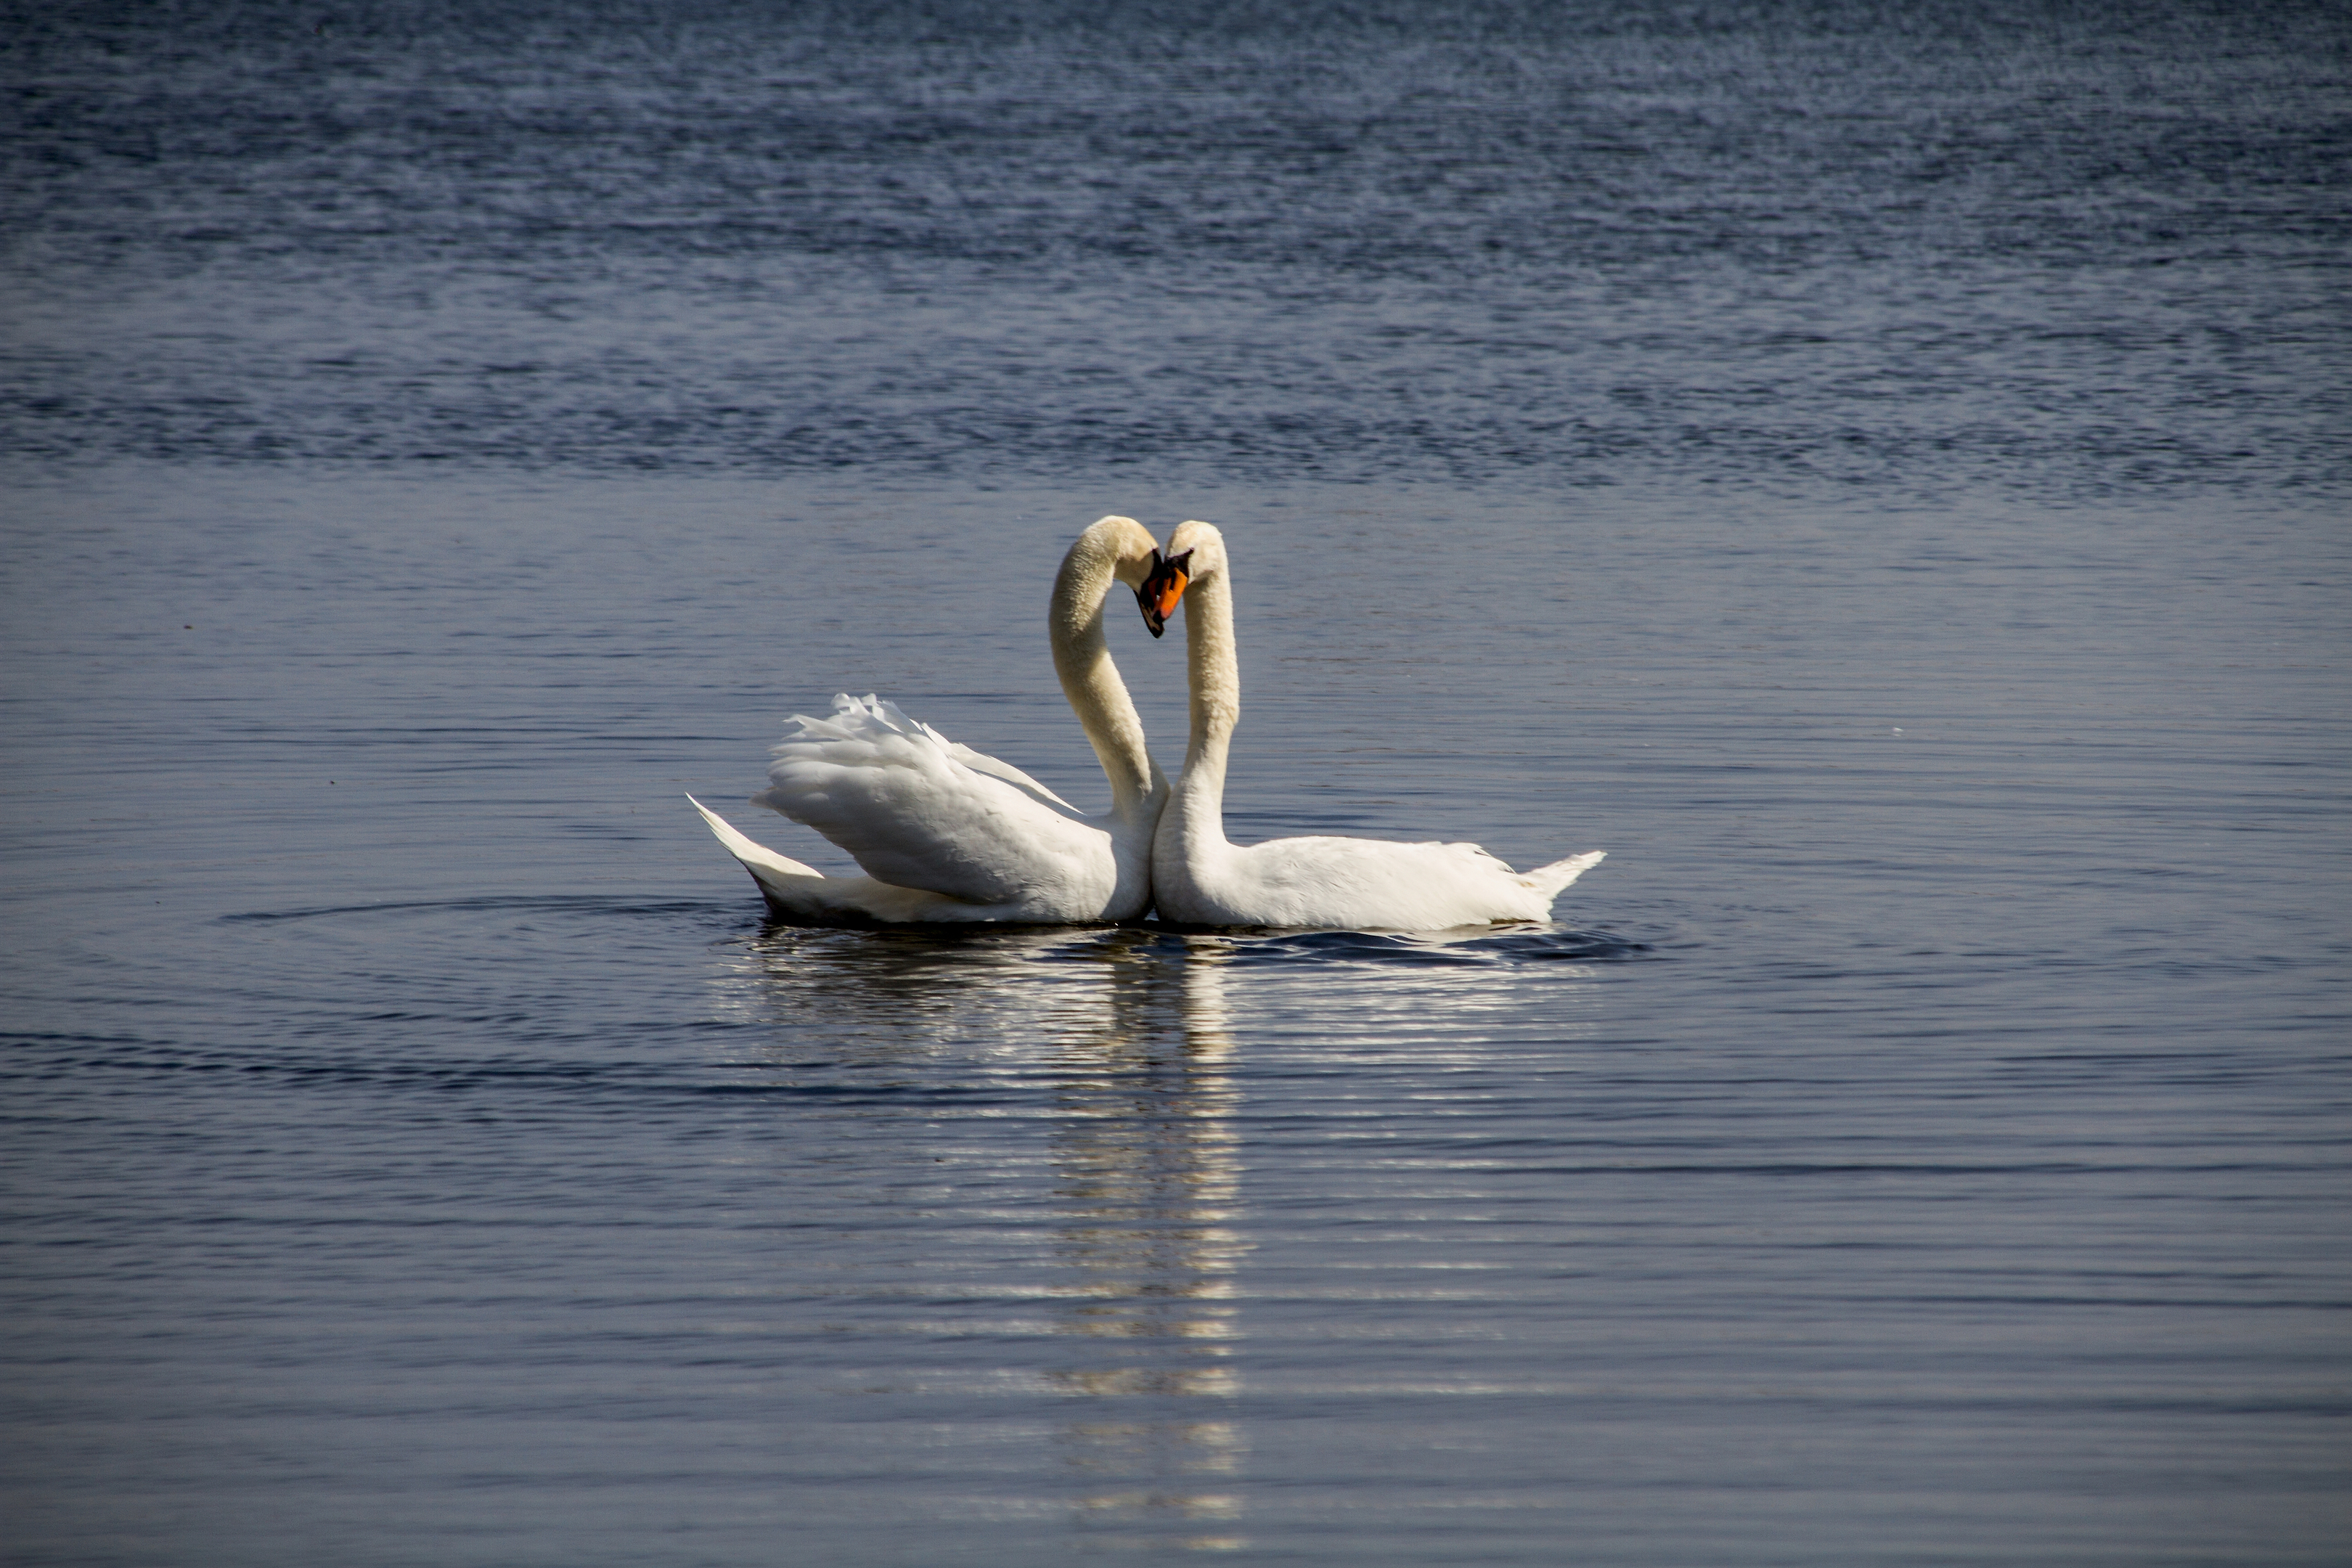 SWAN LAKE: Euan Donegan, of Dundee, captured this lovely scene of swans at Clatto Country Park.